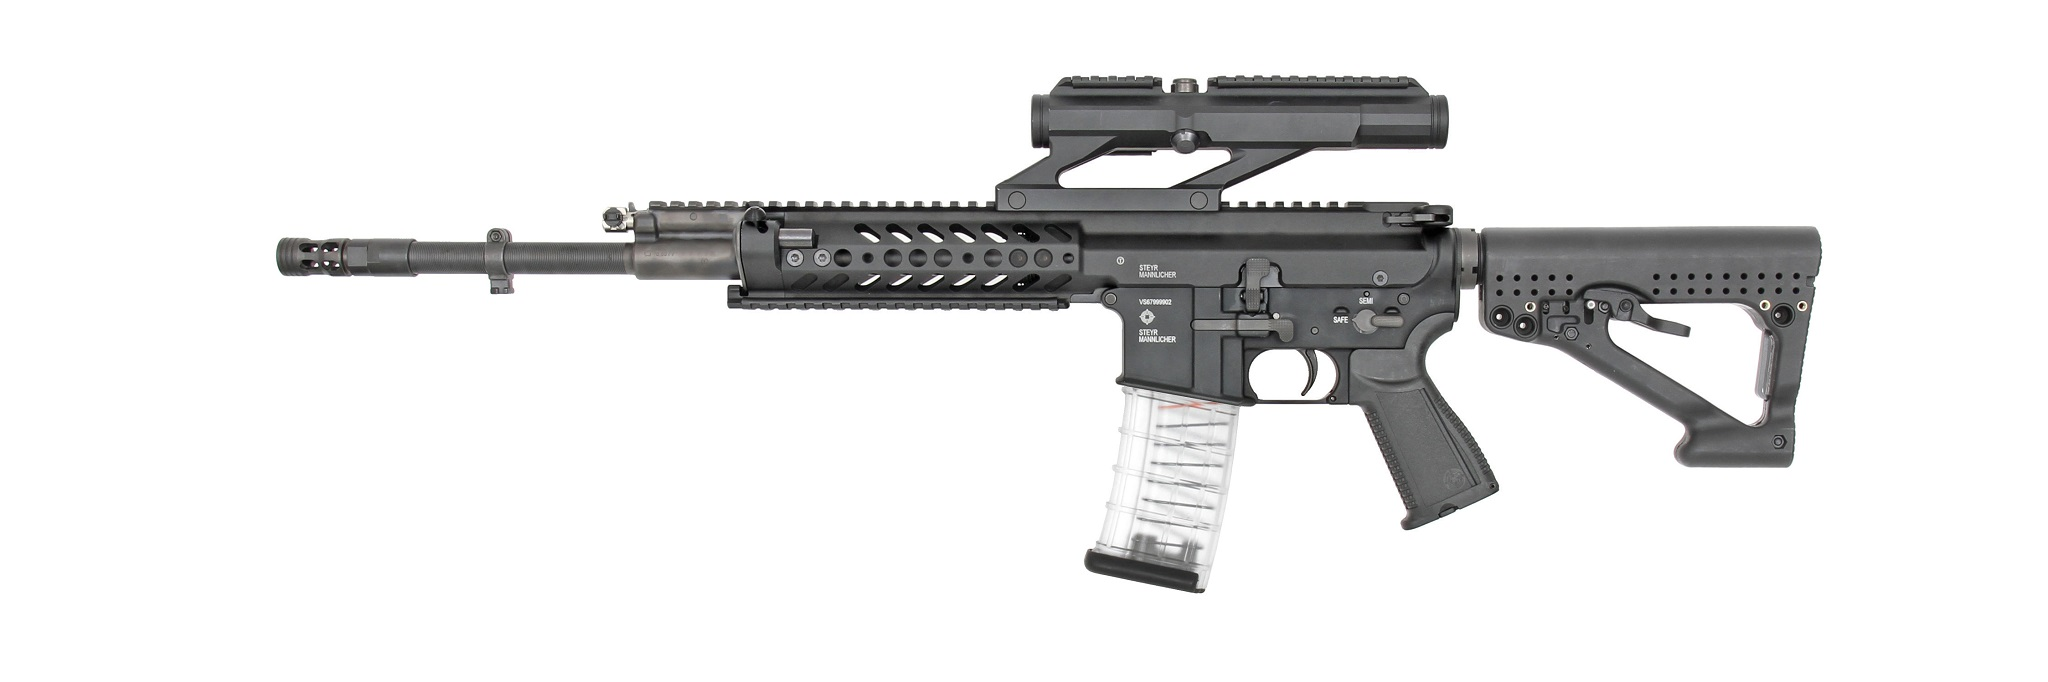 Rheinmetall and Steyr Mannlicher have developed a new RS556 automatic rifle 87